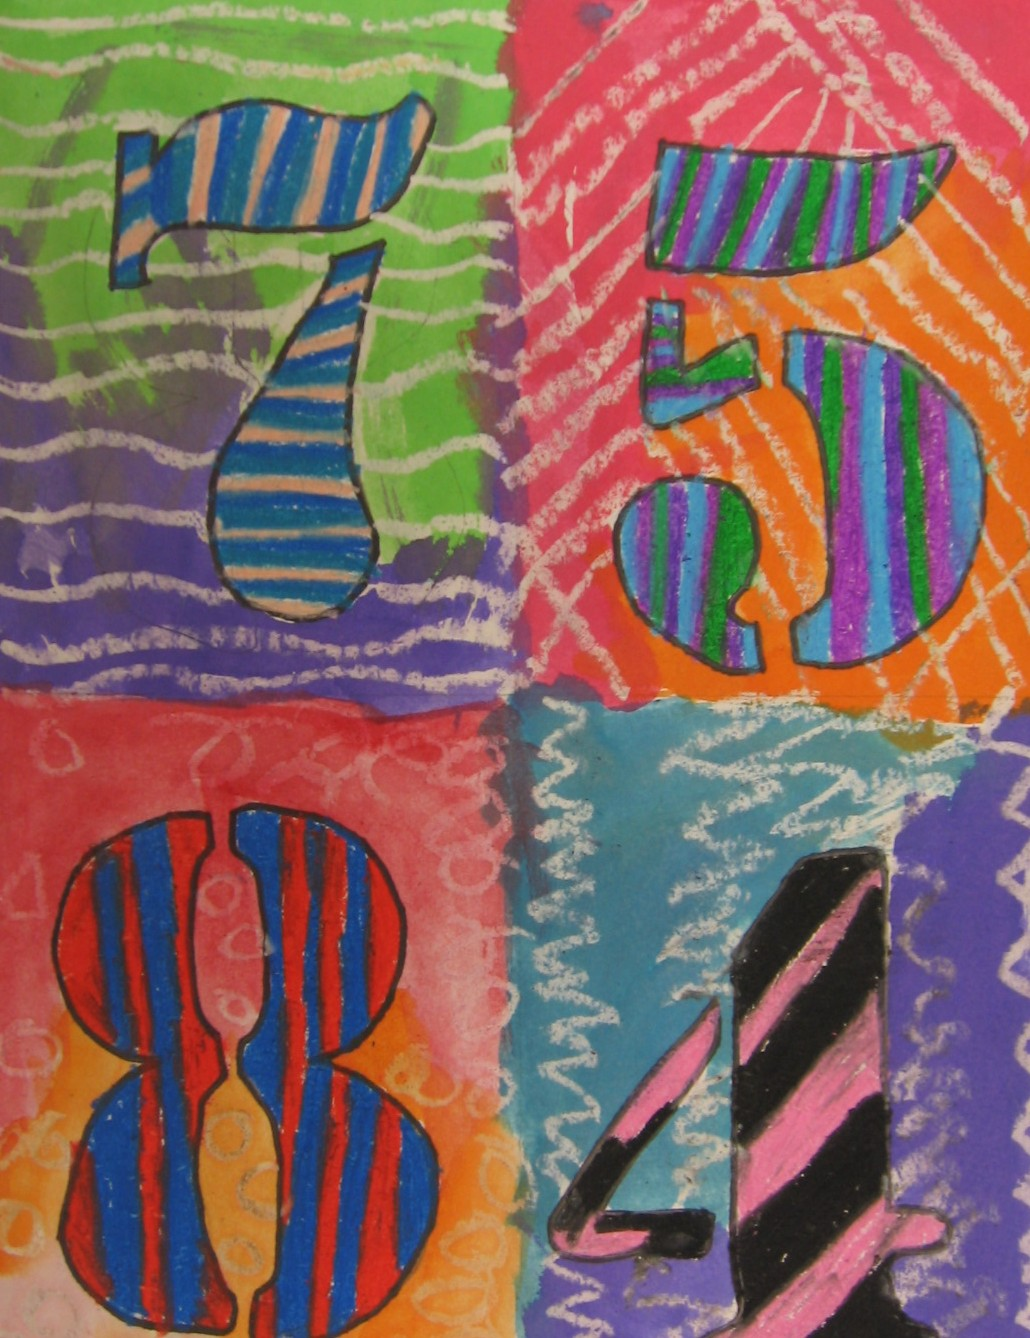 Free jasper johns coloring pages